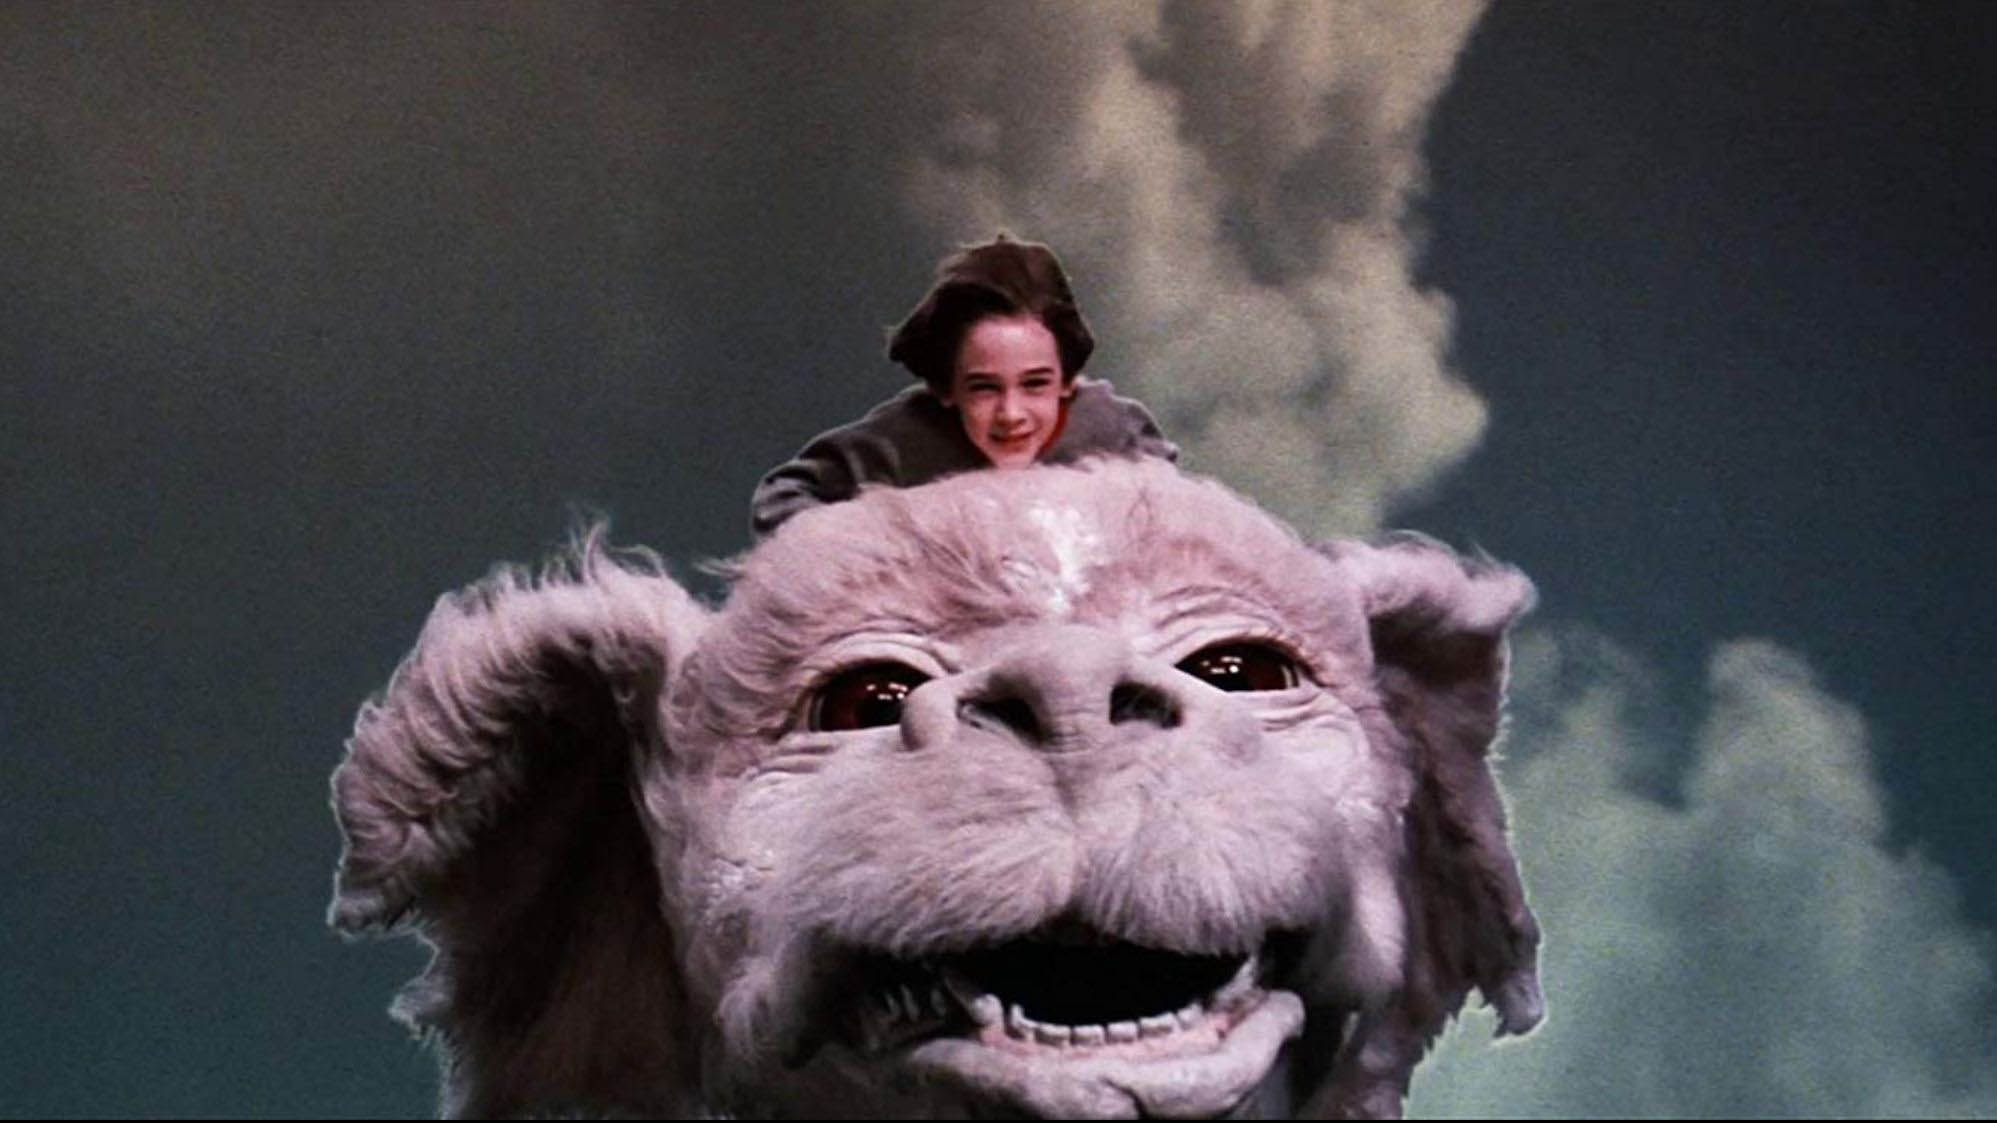 1984 Movie Project - The Neverending Story - 01